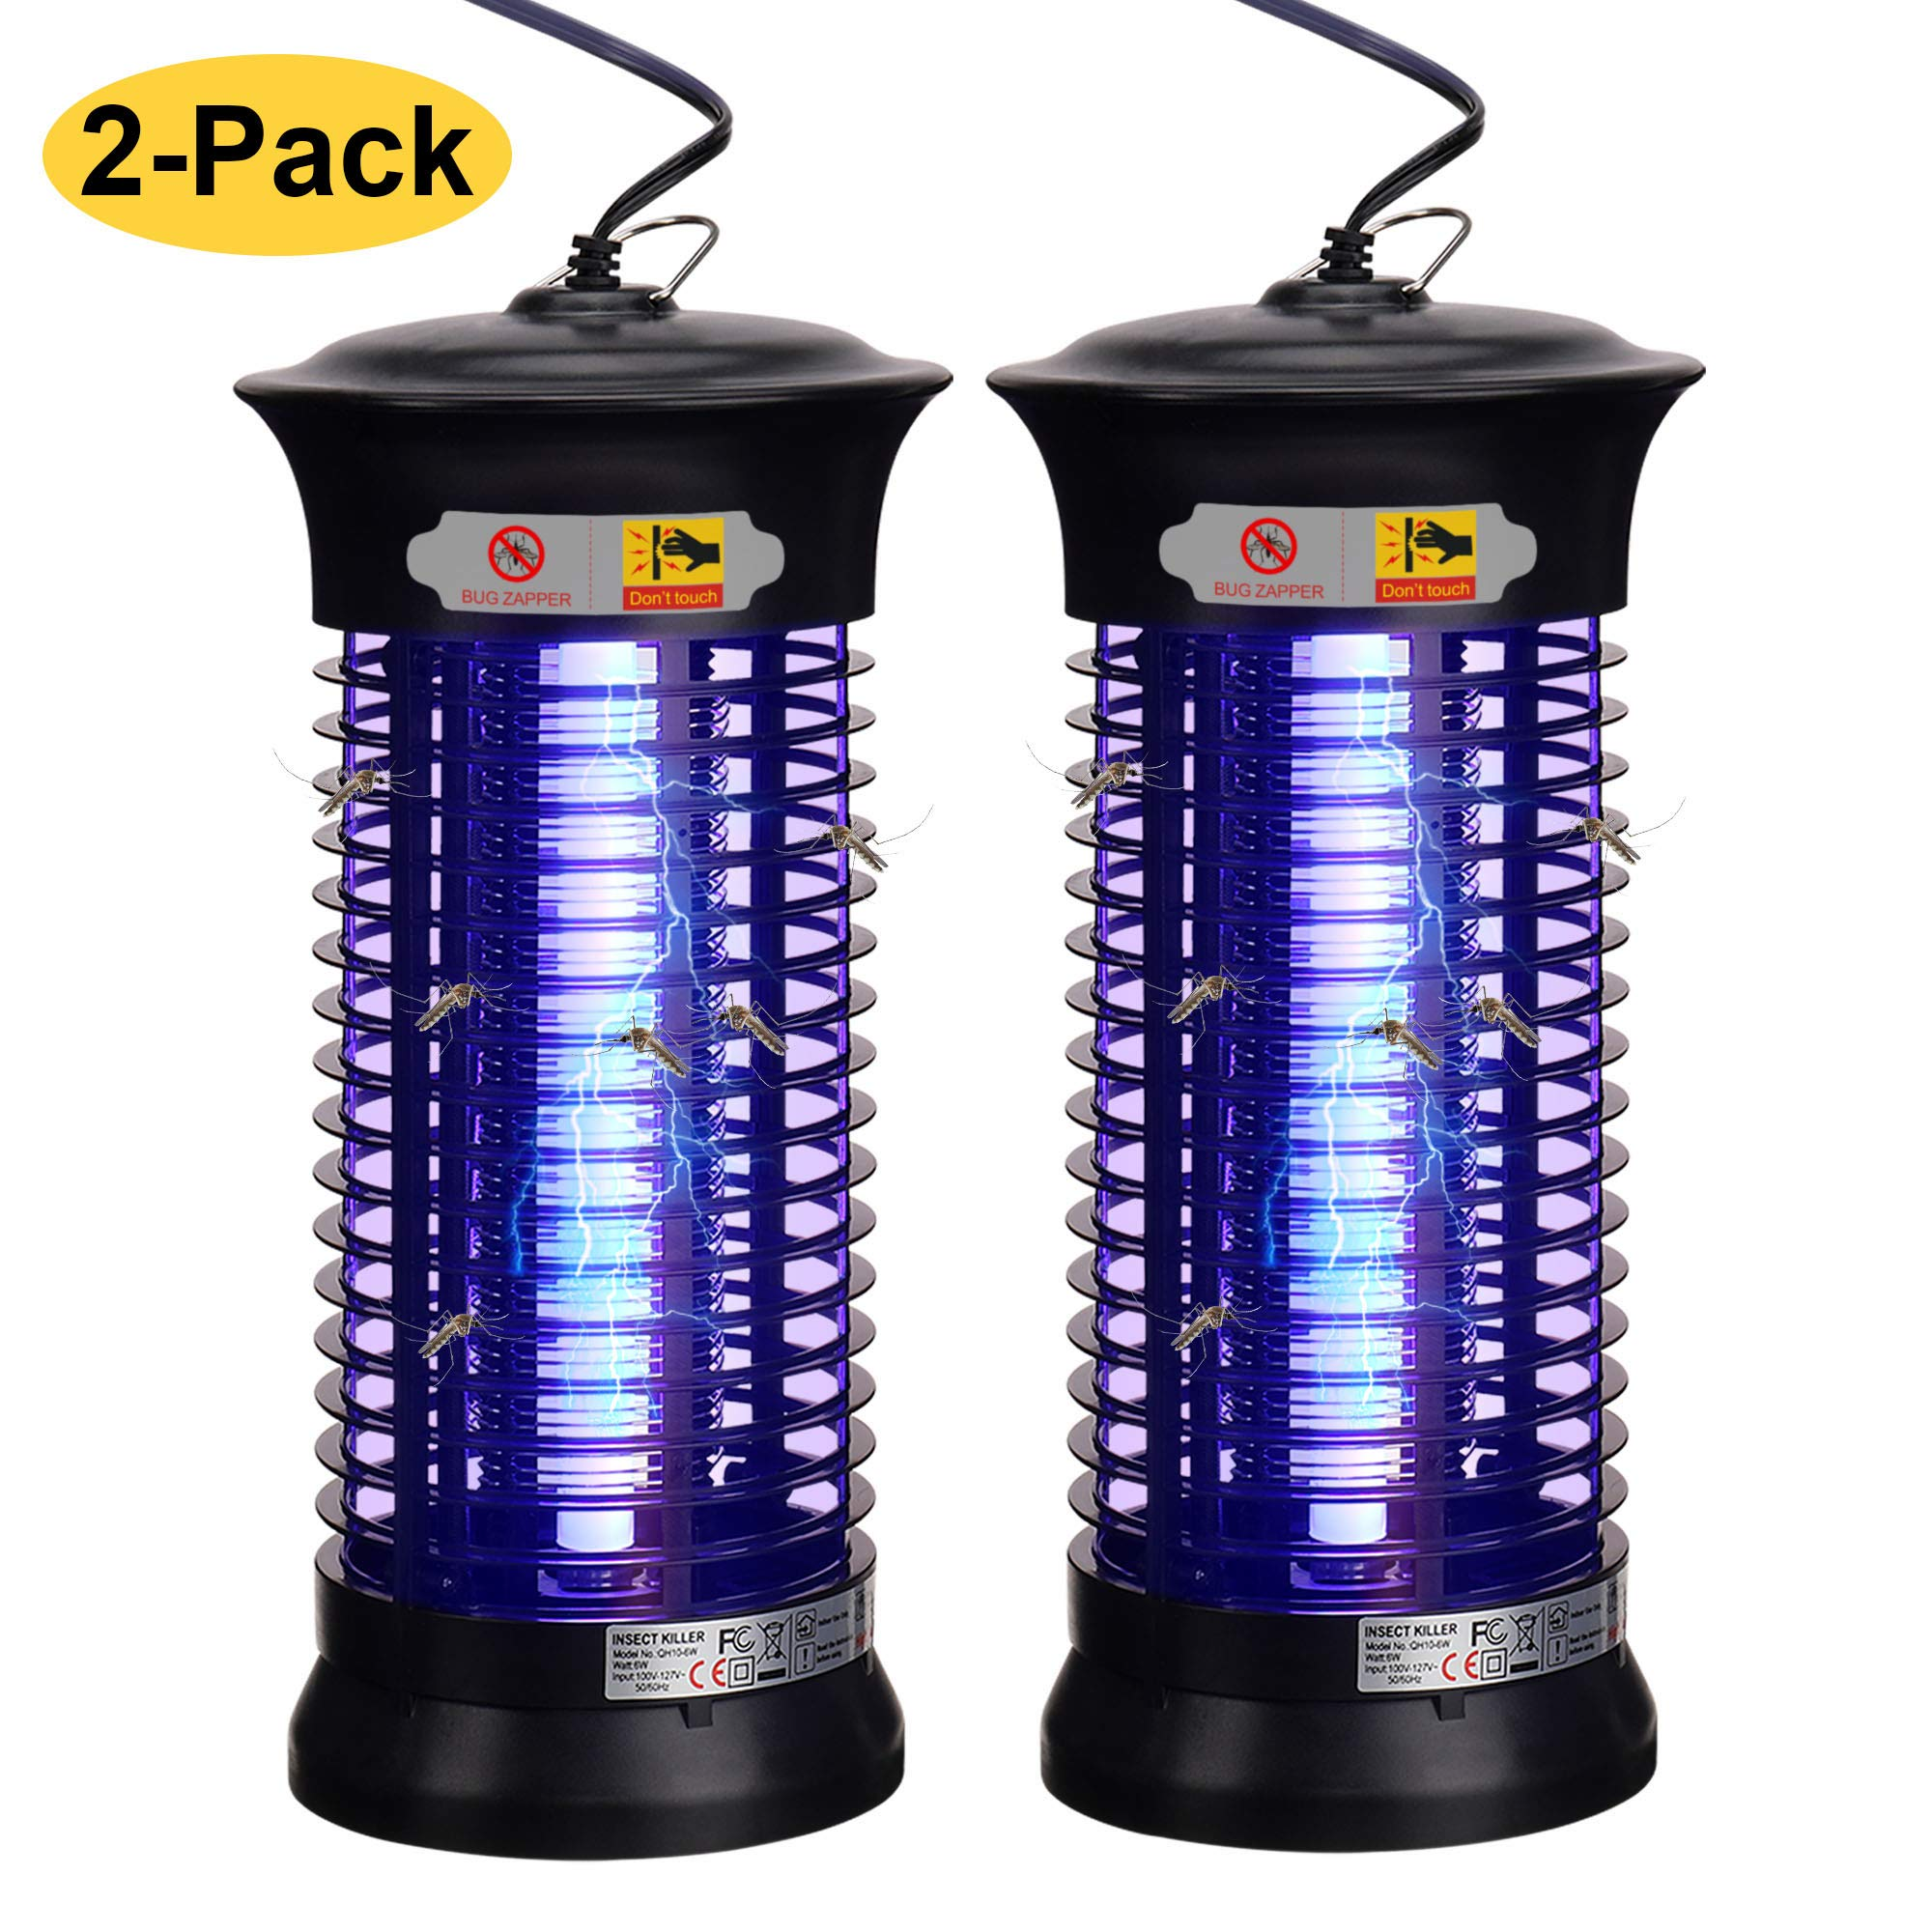 Dormily Bug Zapper Indoor, Electric Mosquito Killer Lamp Insect Trap Fruit Fly Zapper for Home Kitchen | Bedroom | Office Mosquito Trap Plug in by Dormily